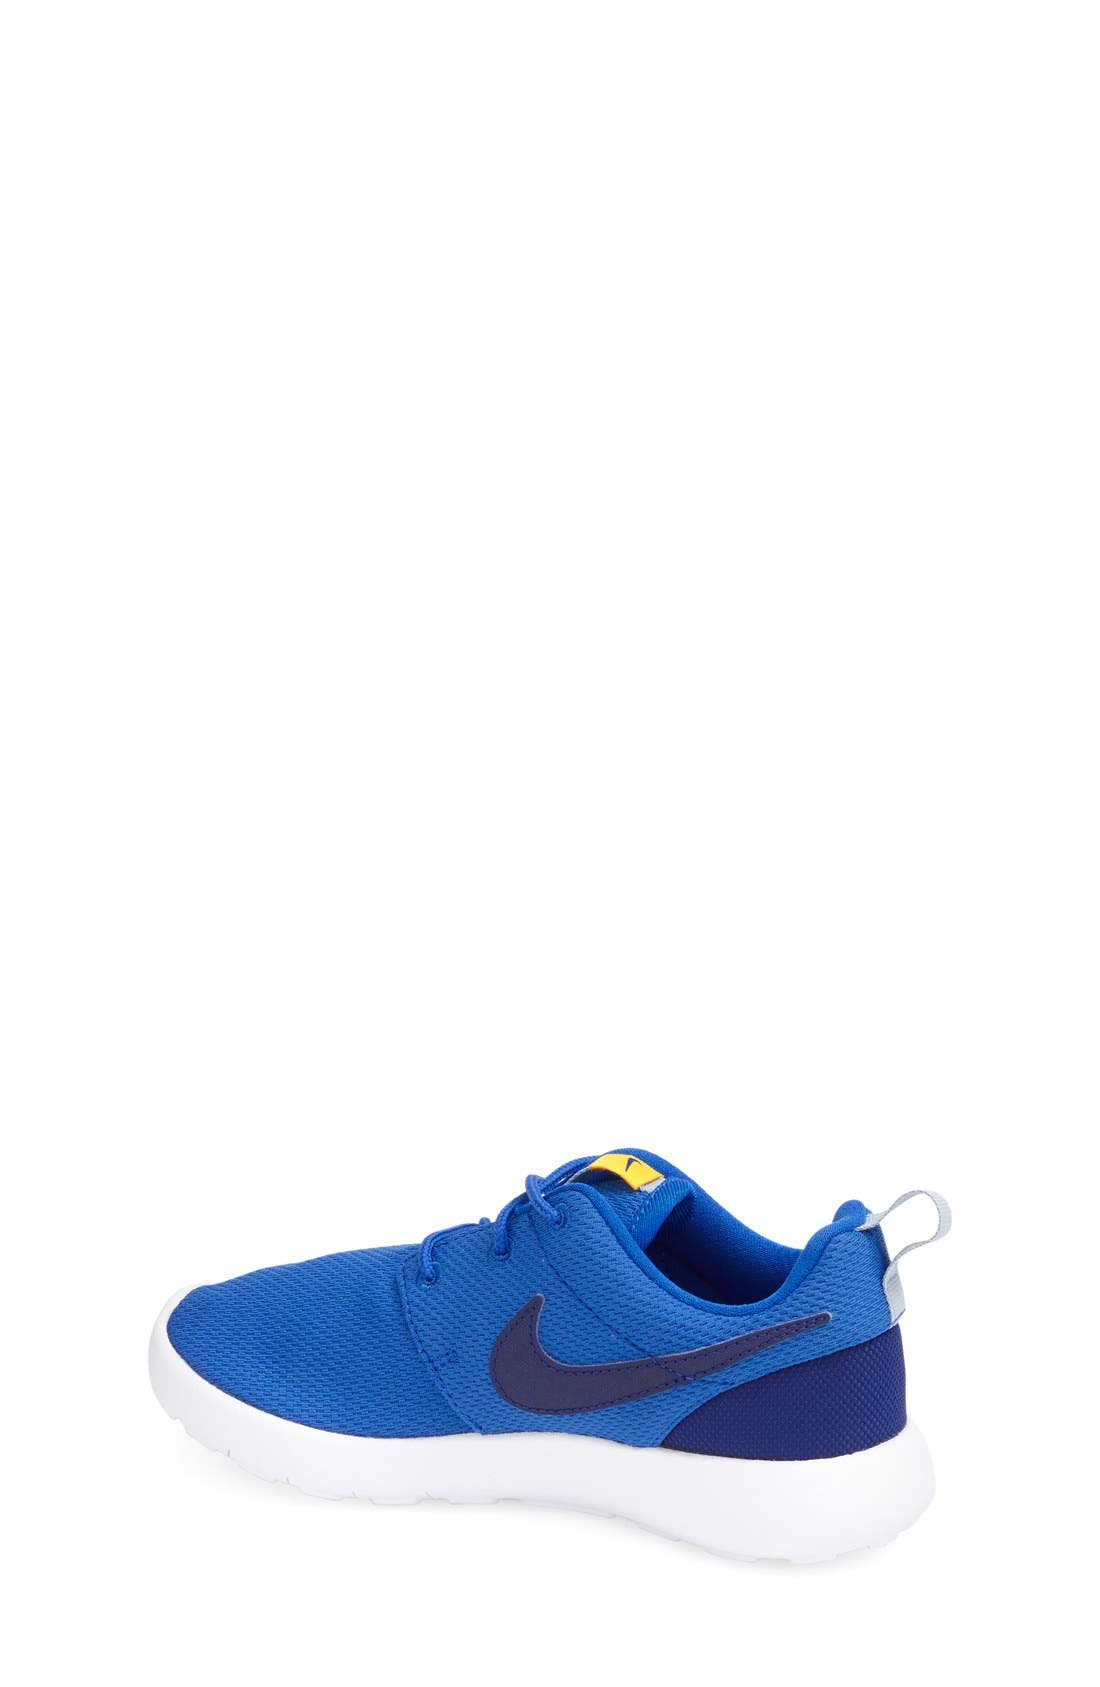 Roshe Run Sneaker,                             Alternate thumbnail 54, color,